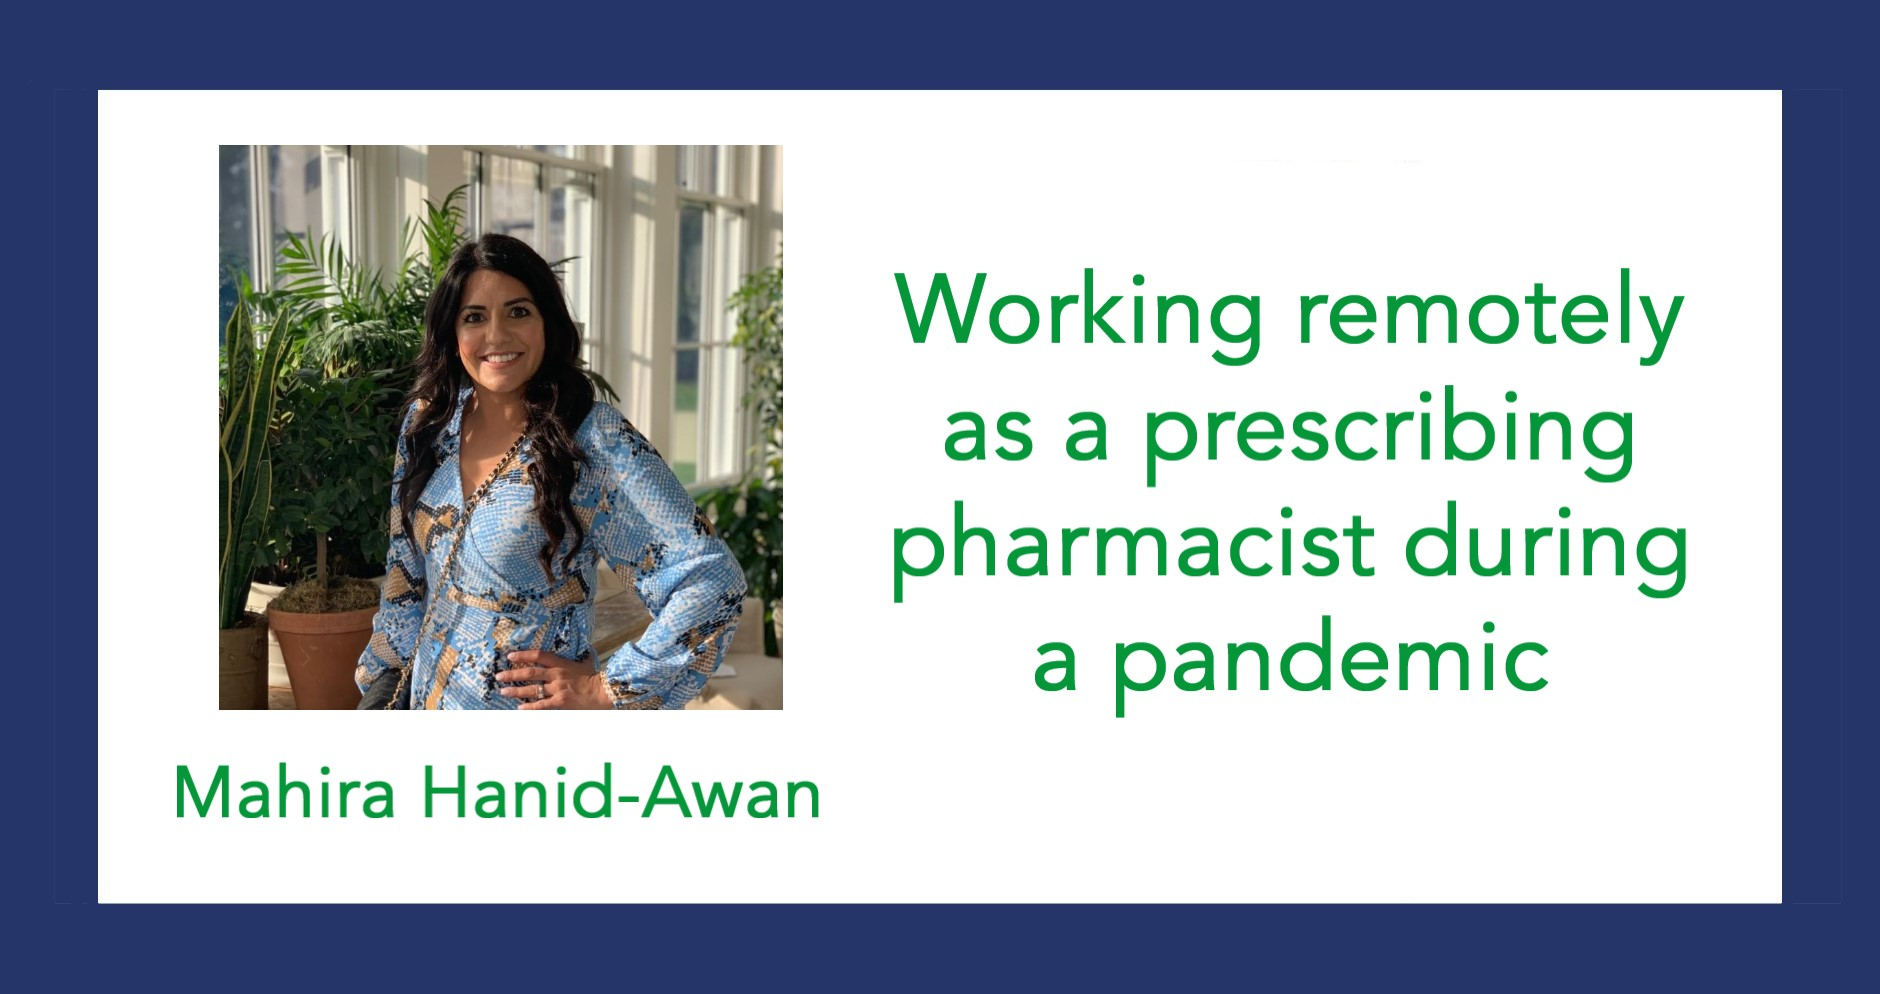 Working remotely as a prescribing pharmacist during a pandemic